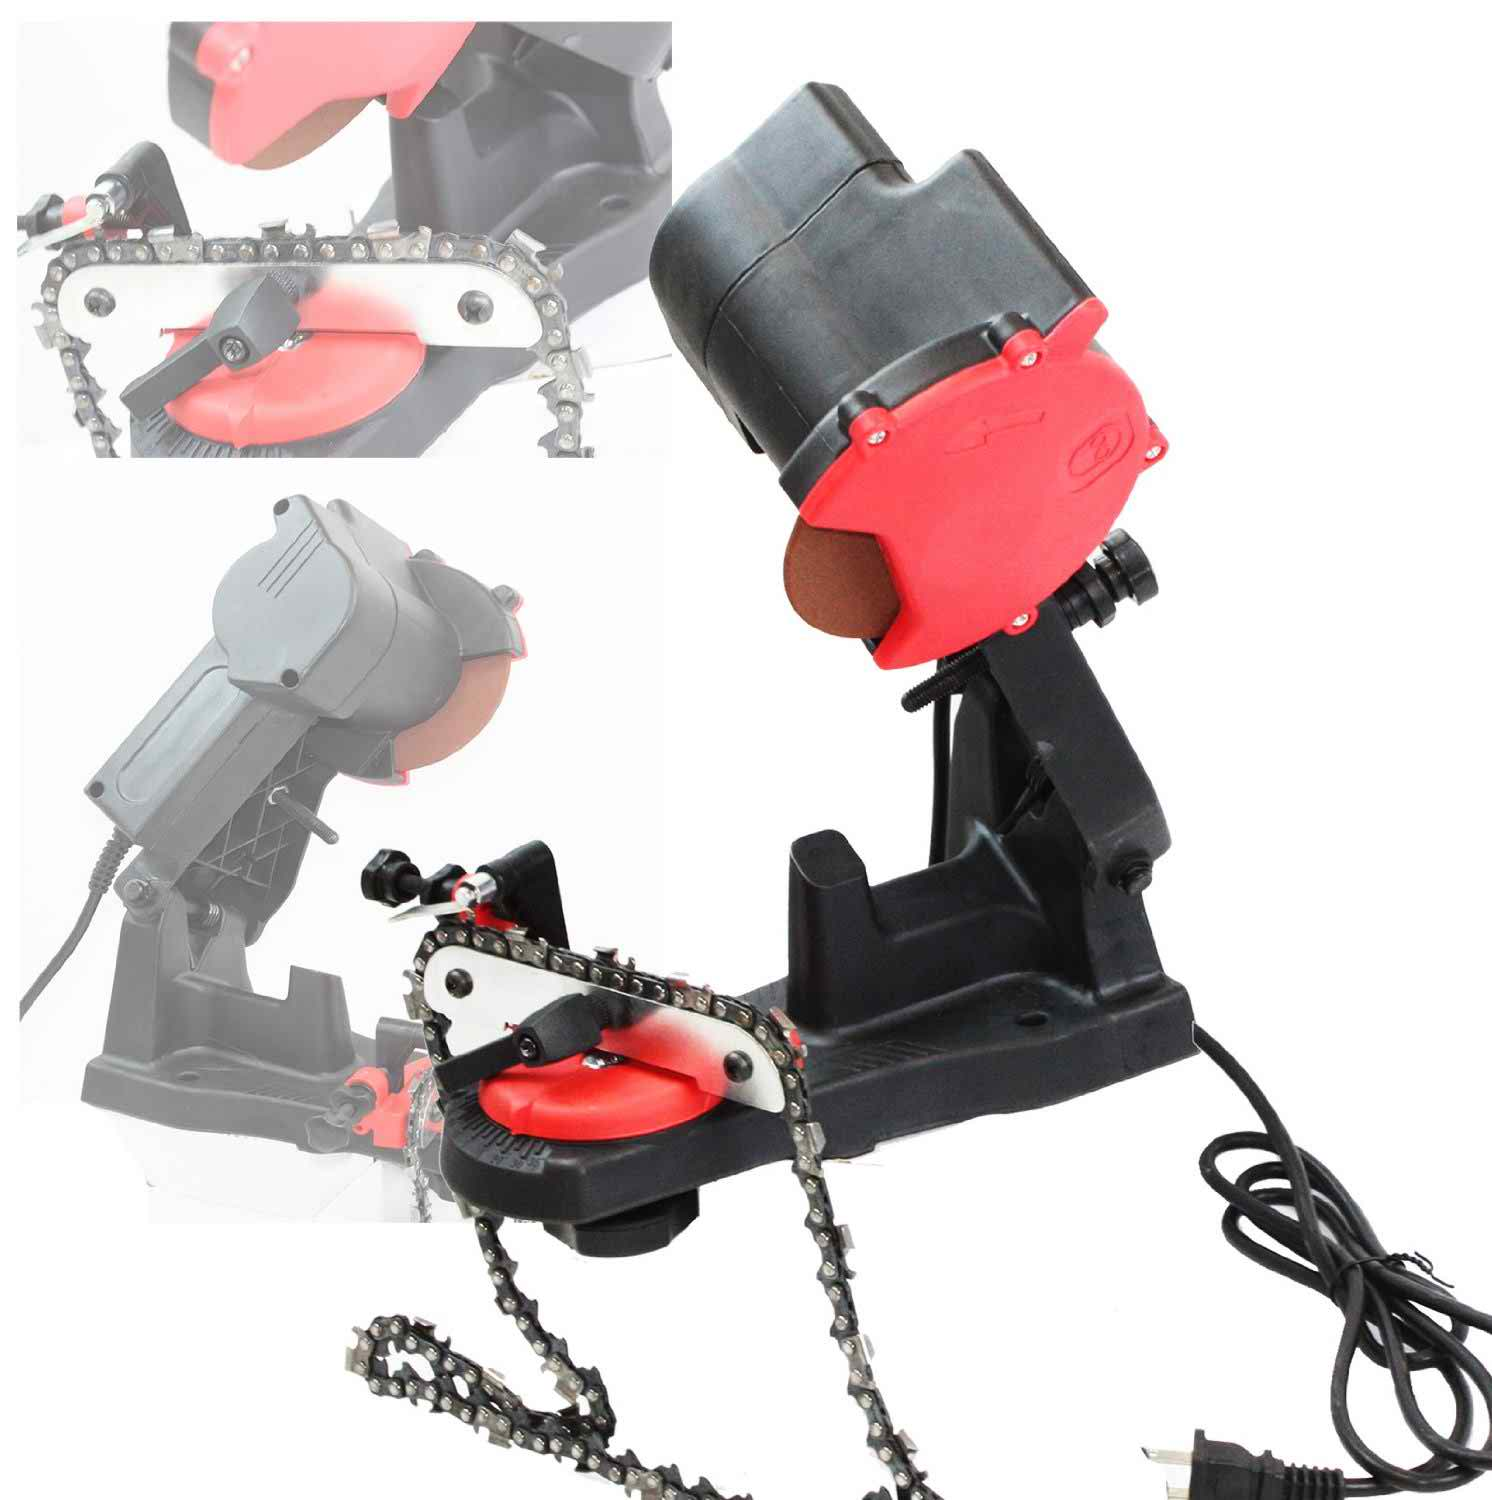 Electric Grinder Chain Saw Bench Sharpener Review